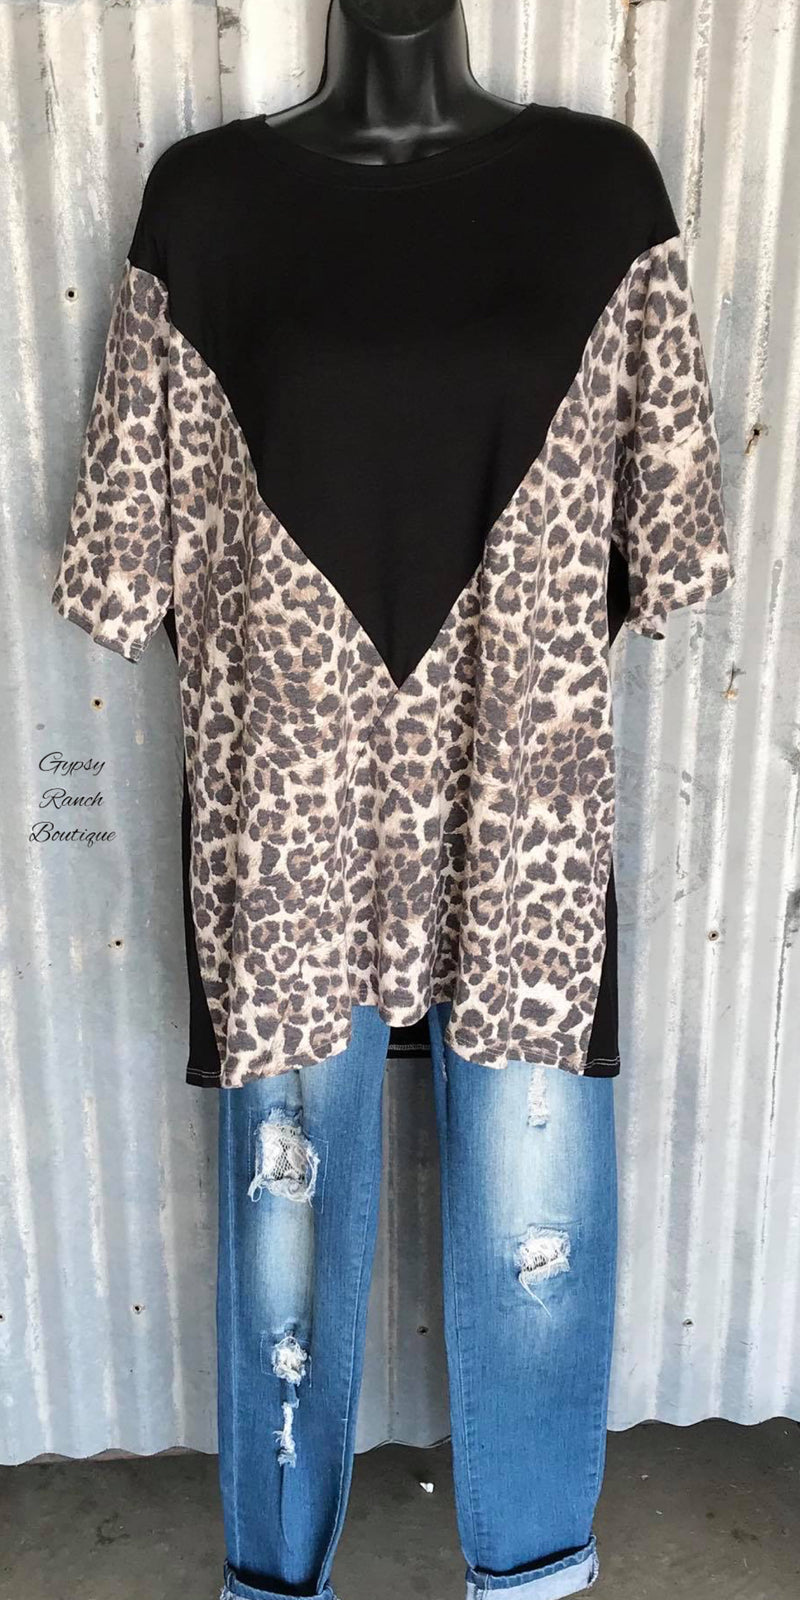 Caydence Leopard Top - Also in Plus Size